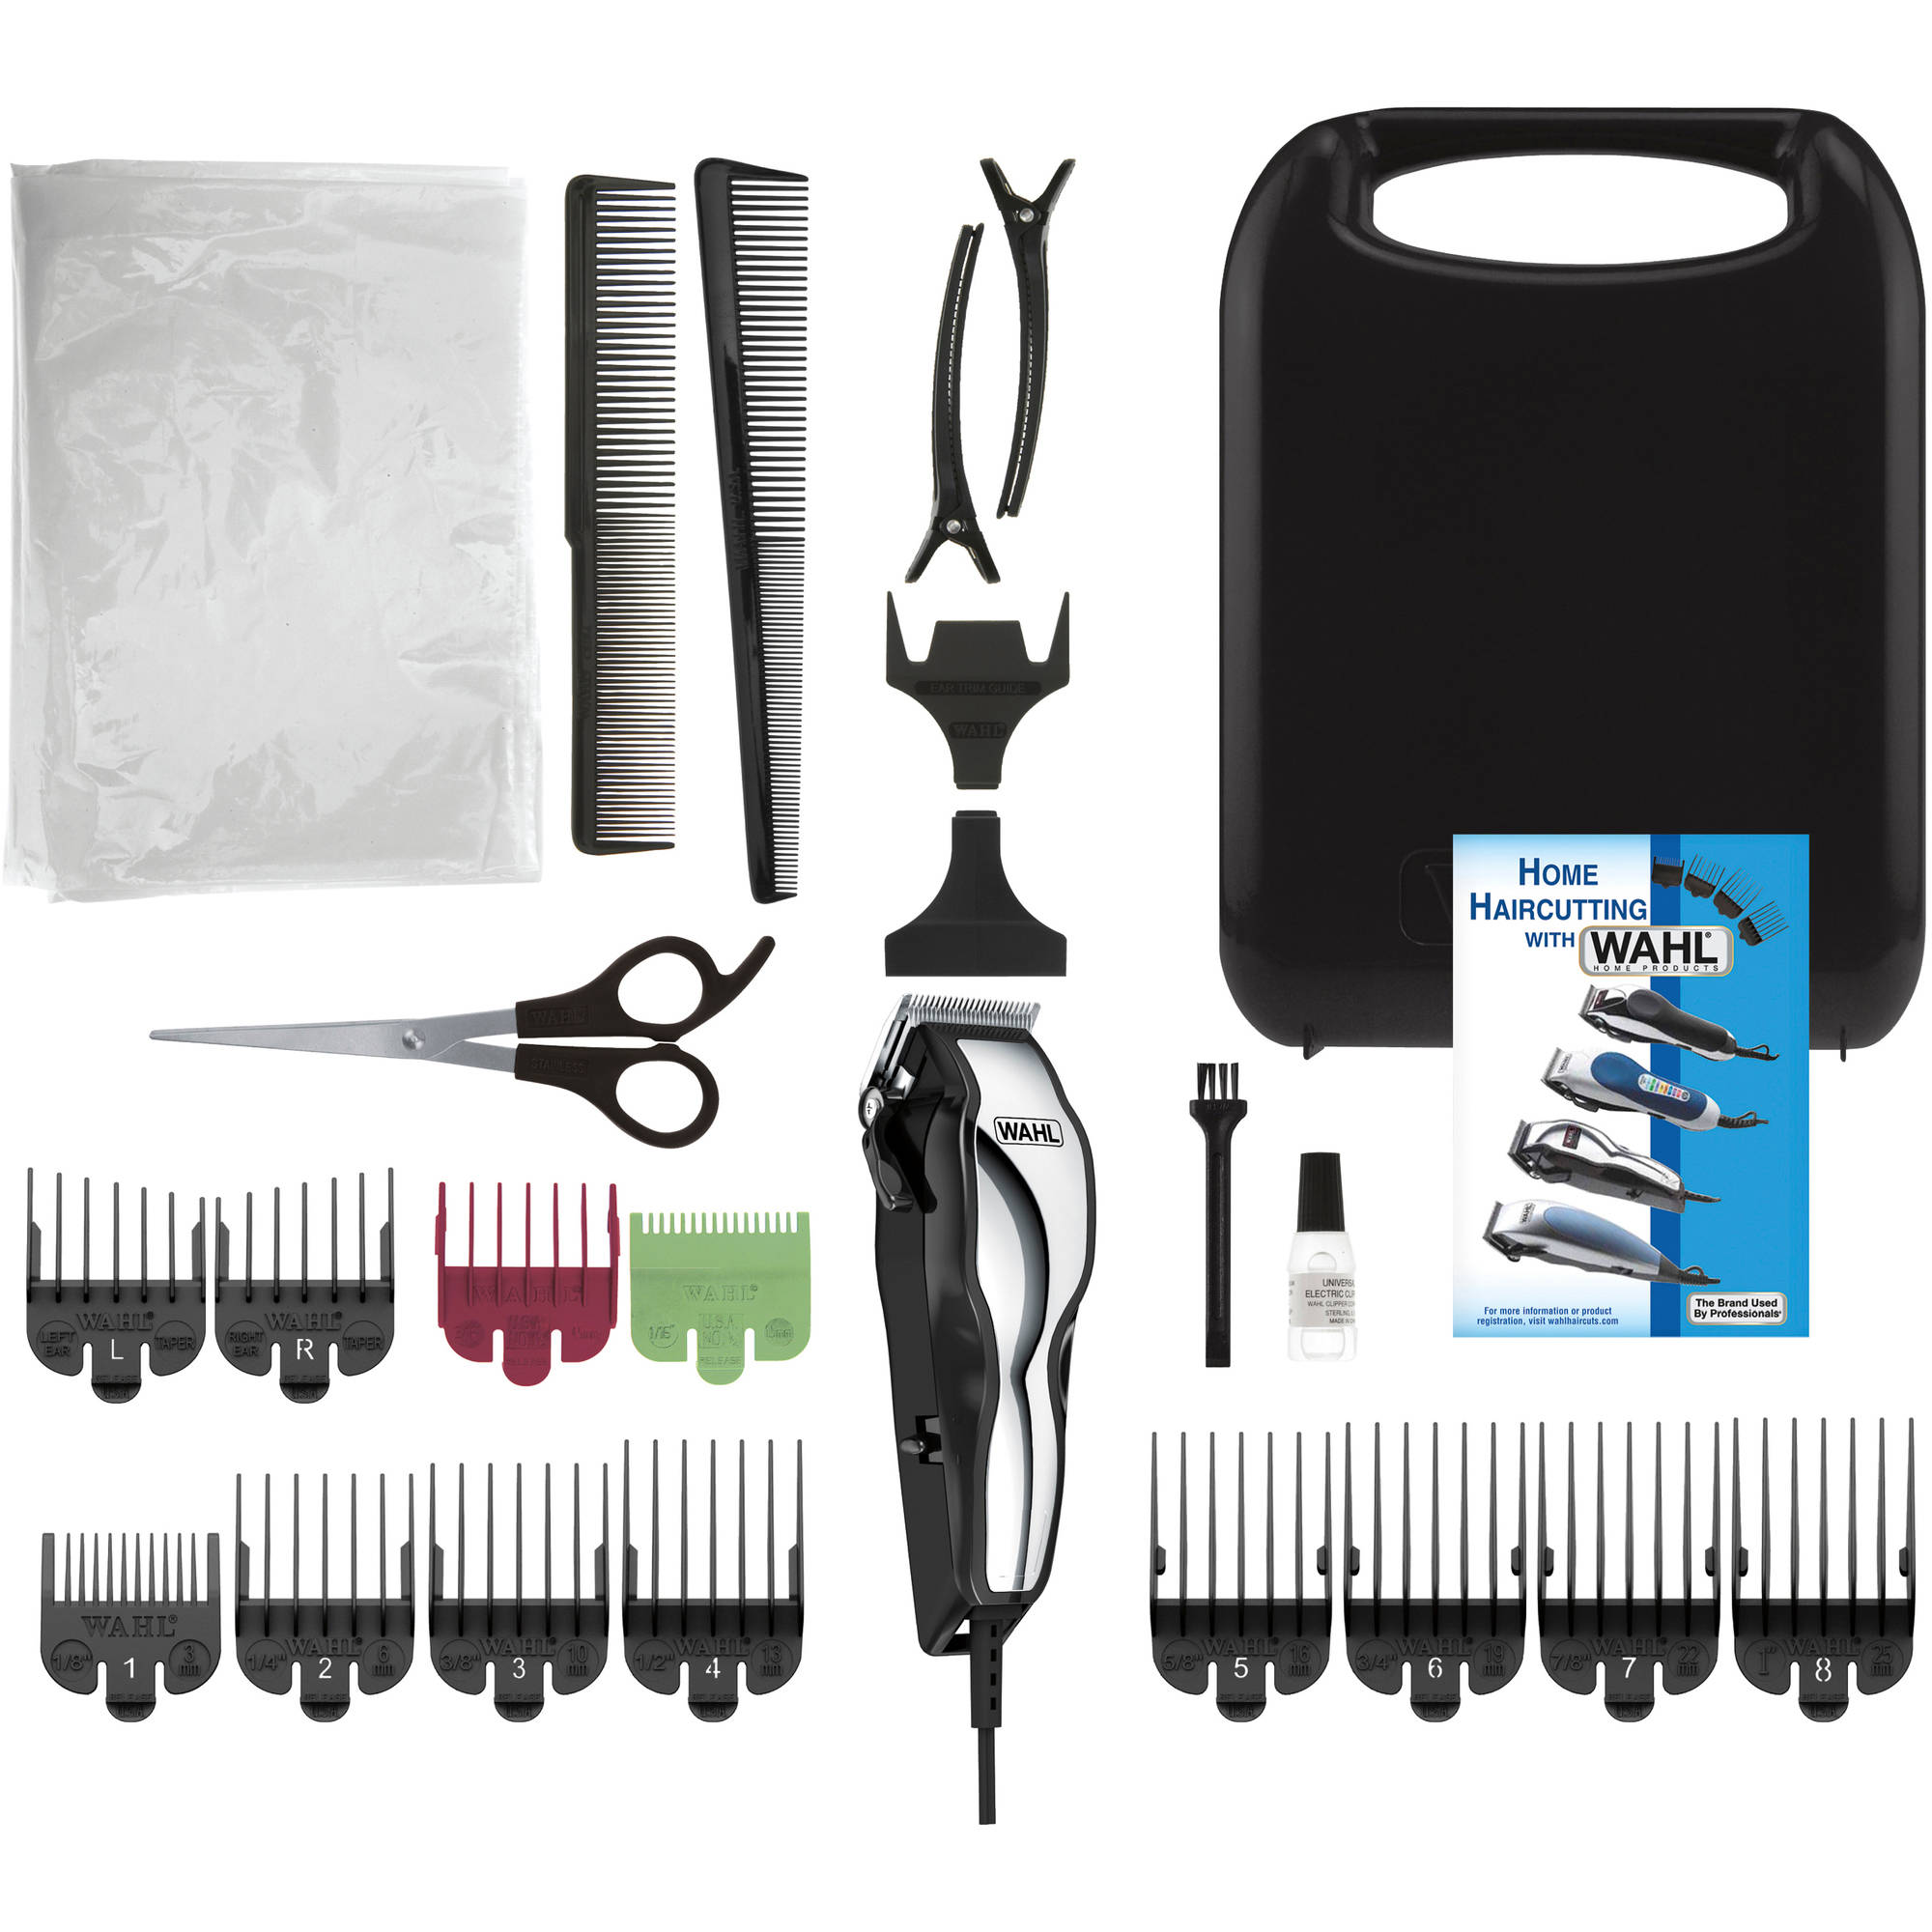 WAHL Chrome Pro Home Haircutting Kit, Model 79520-3501